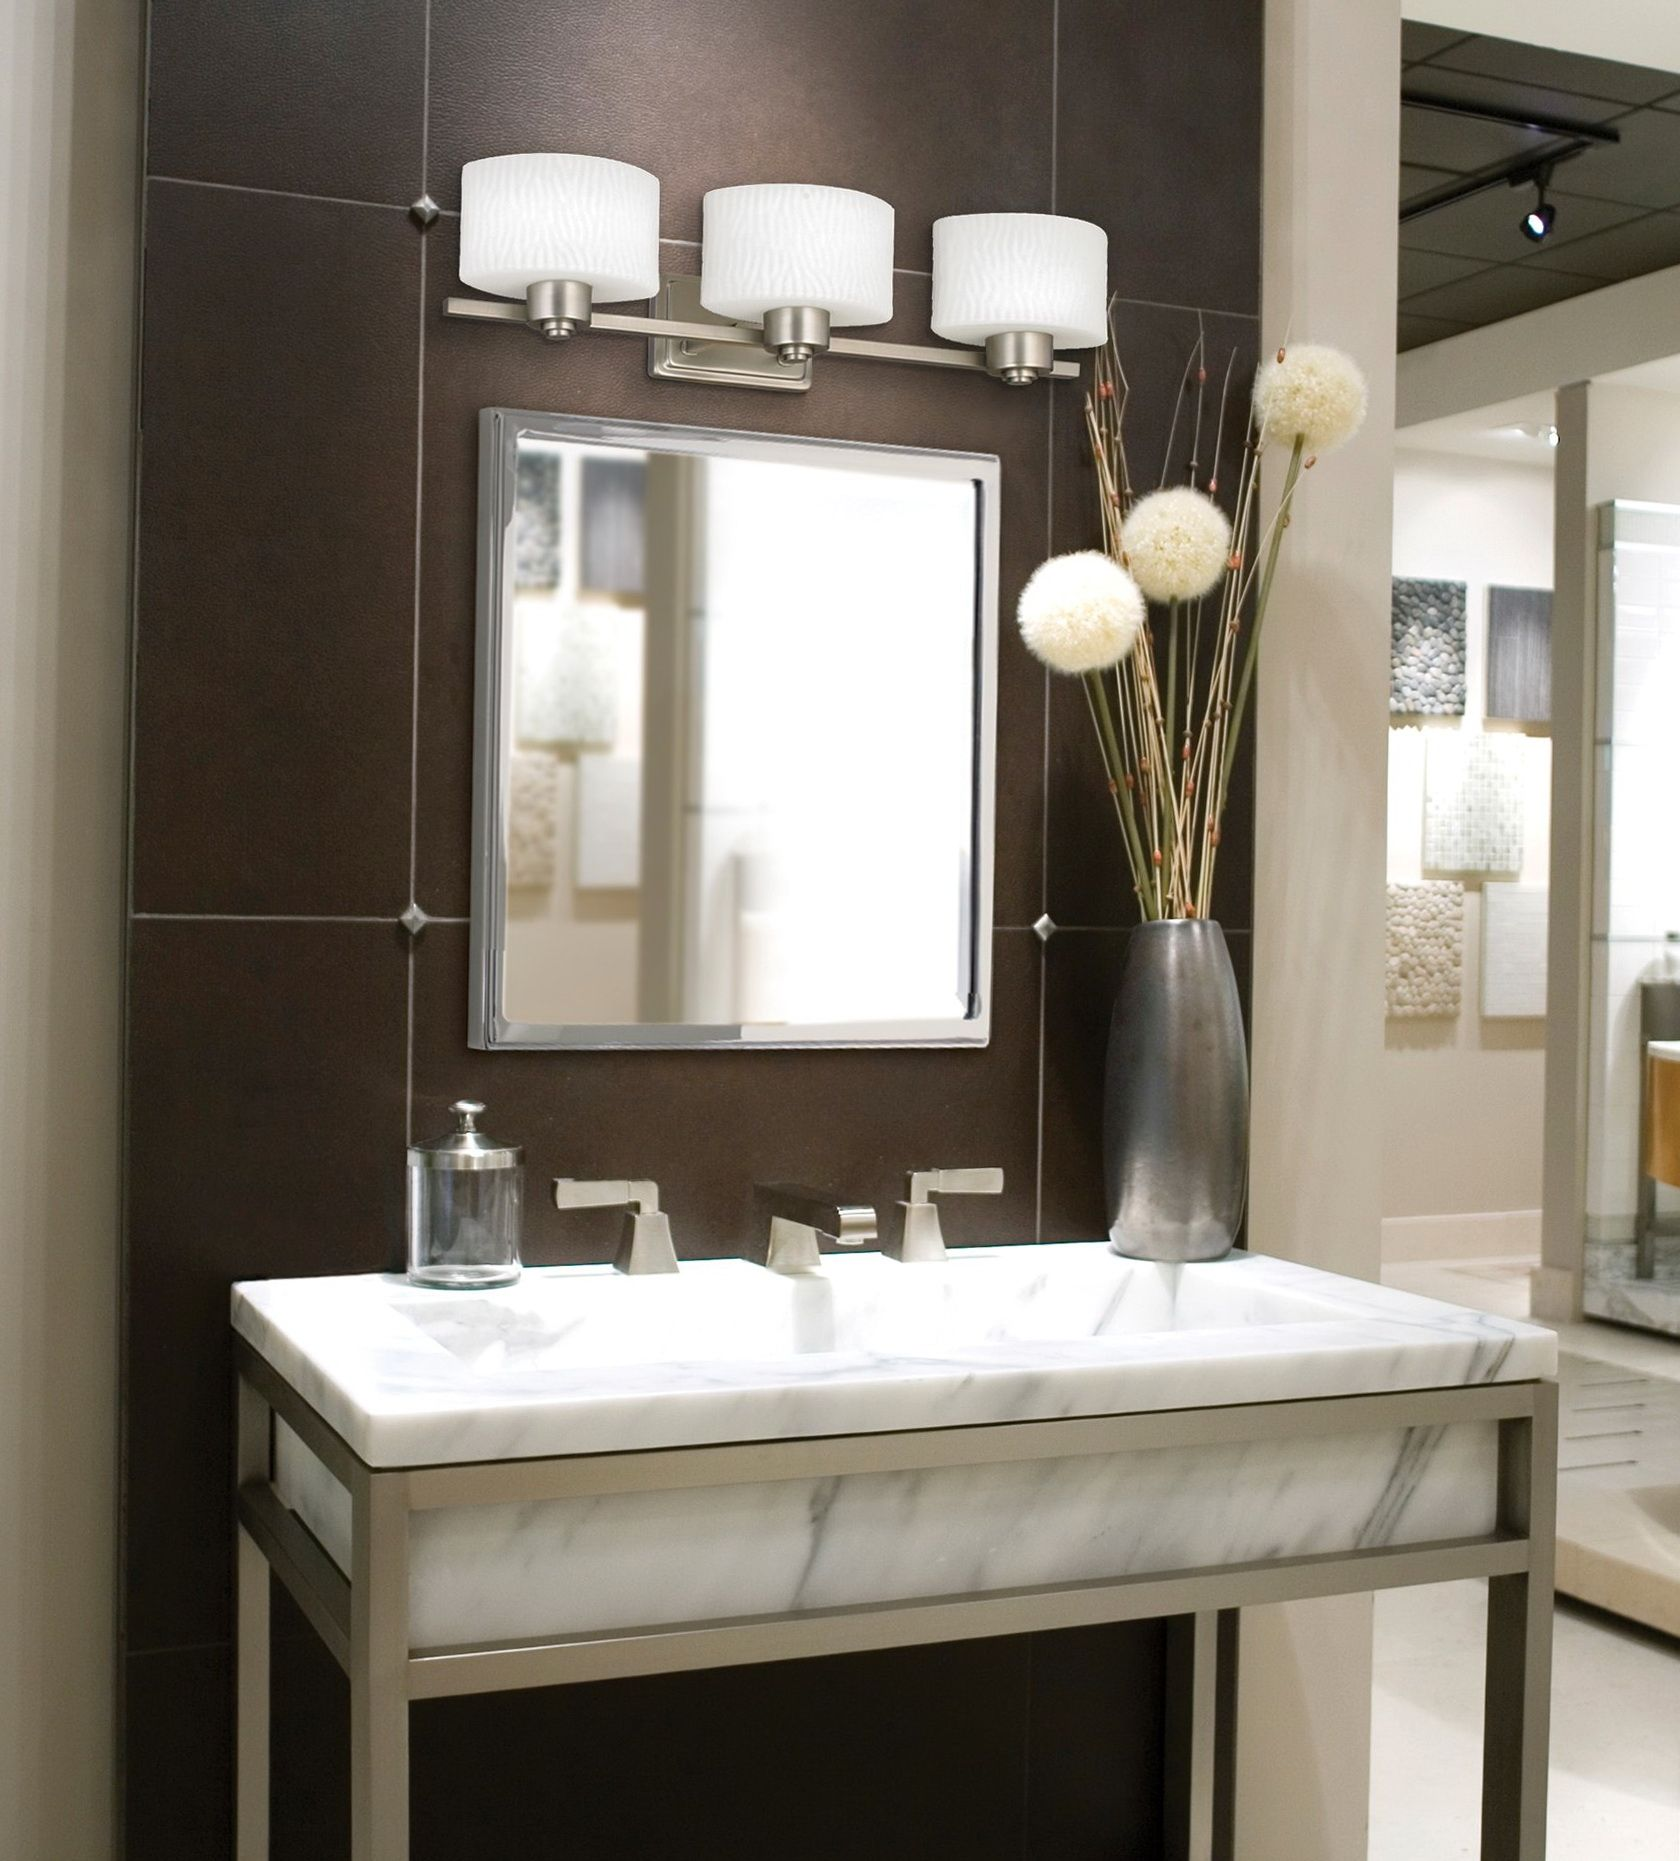 Unique Pictures Of Bathroom Vanities and Mirrors